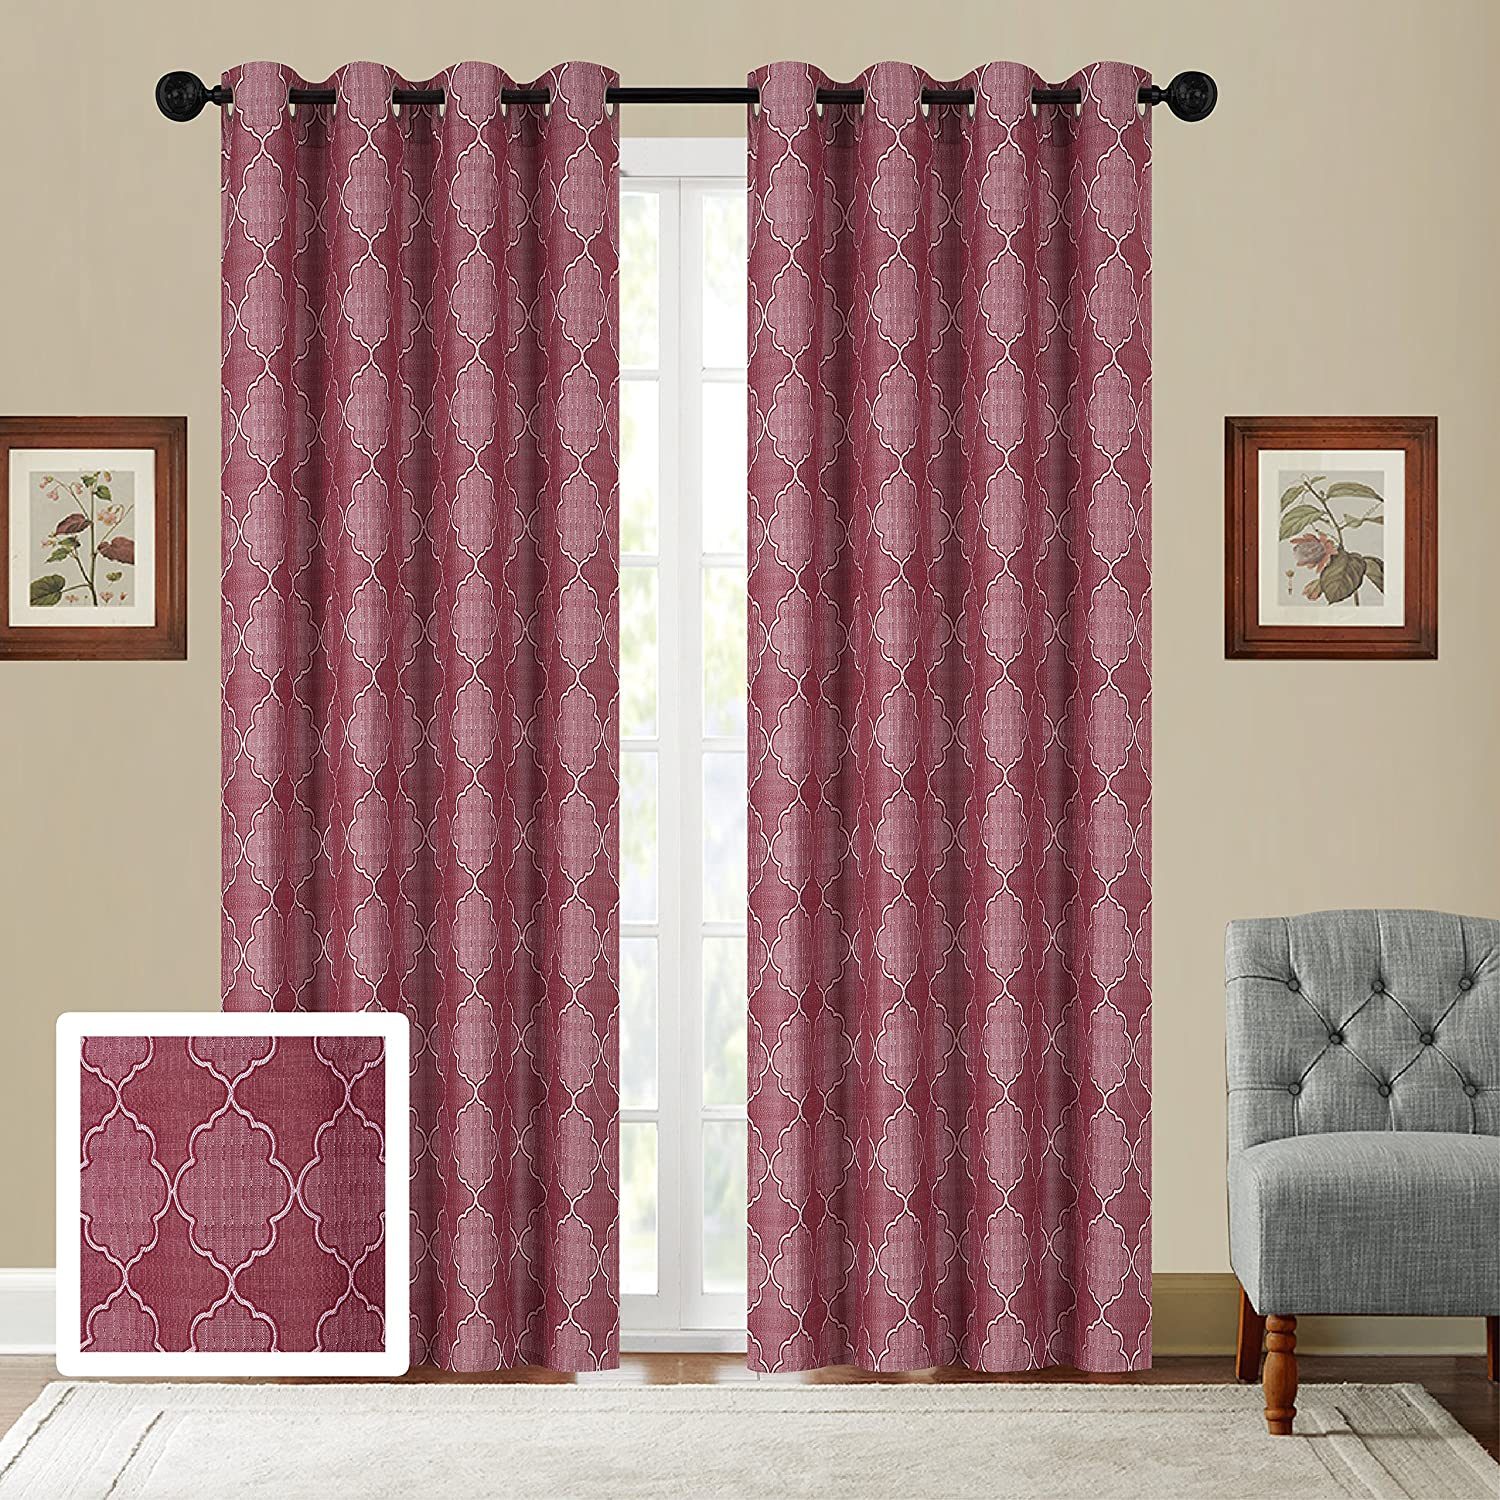 Inch- Wide X 84 -Inch Sage Green Long Package Contains Set of 2 Panels New # Arielle each Panel is 54 Fancy Collection Set of 2 Panels Curtain Embroidery Woven Jacquard Curtain,108 W X 84 L